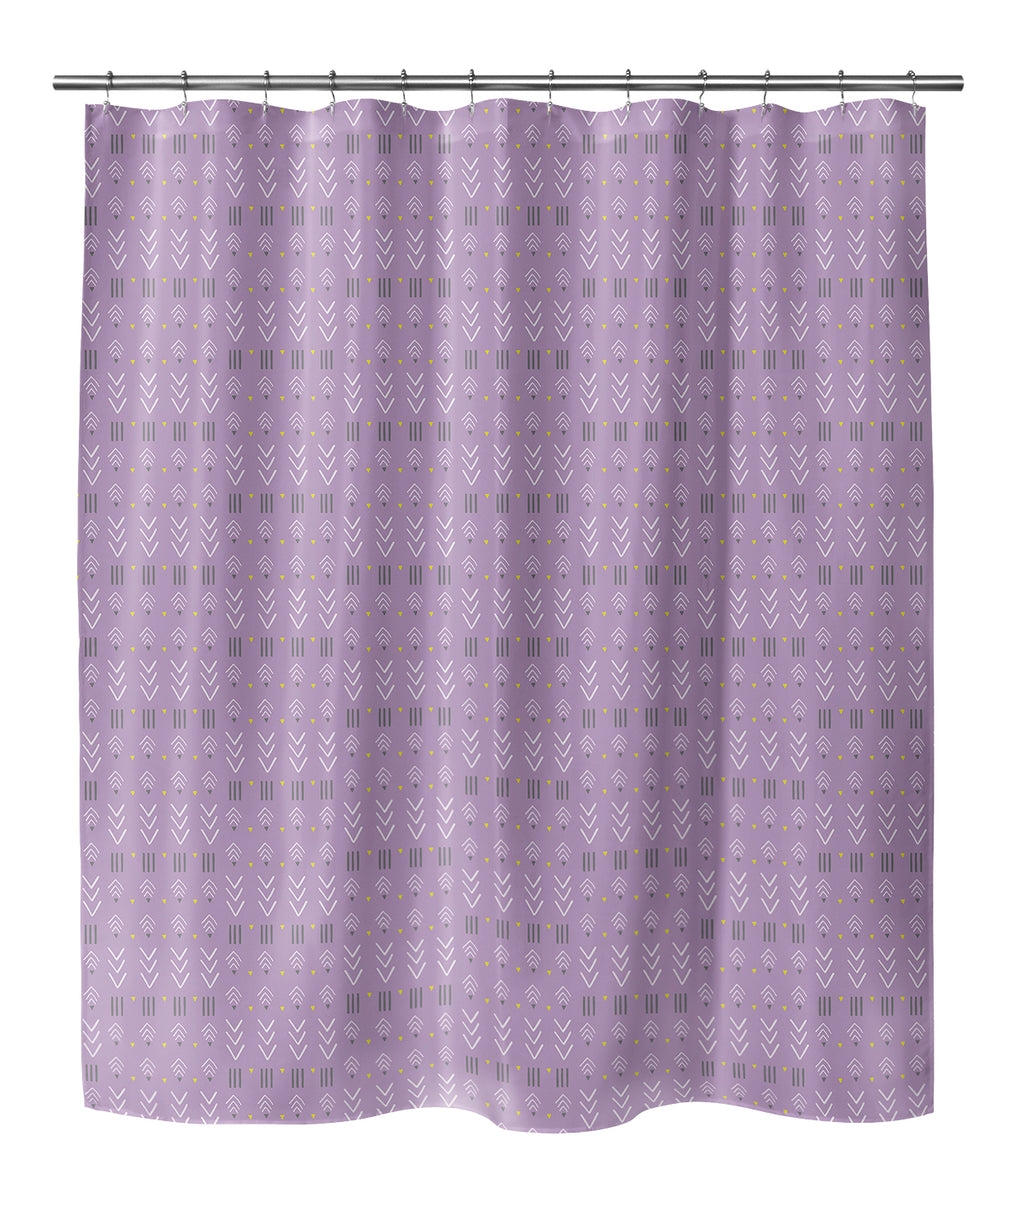 BOHO LAVENDER Shower Curtain By Chi Hey Lee